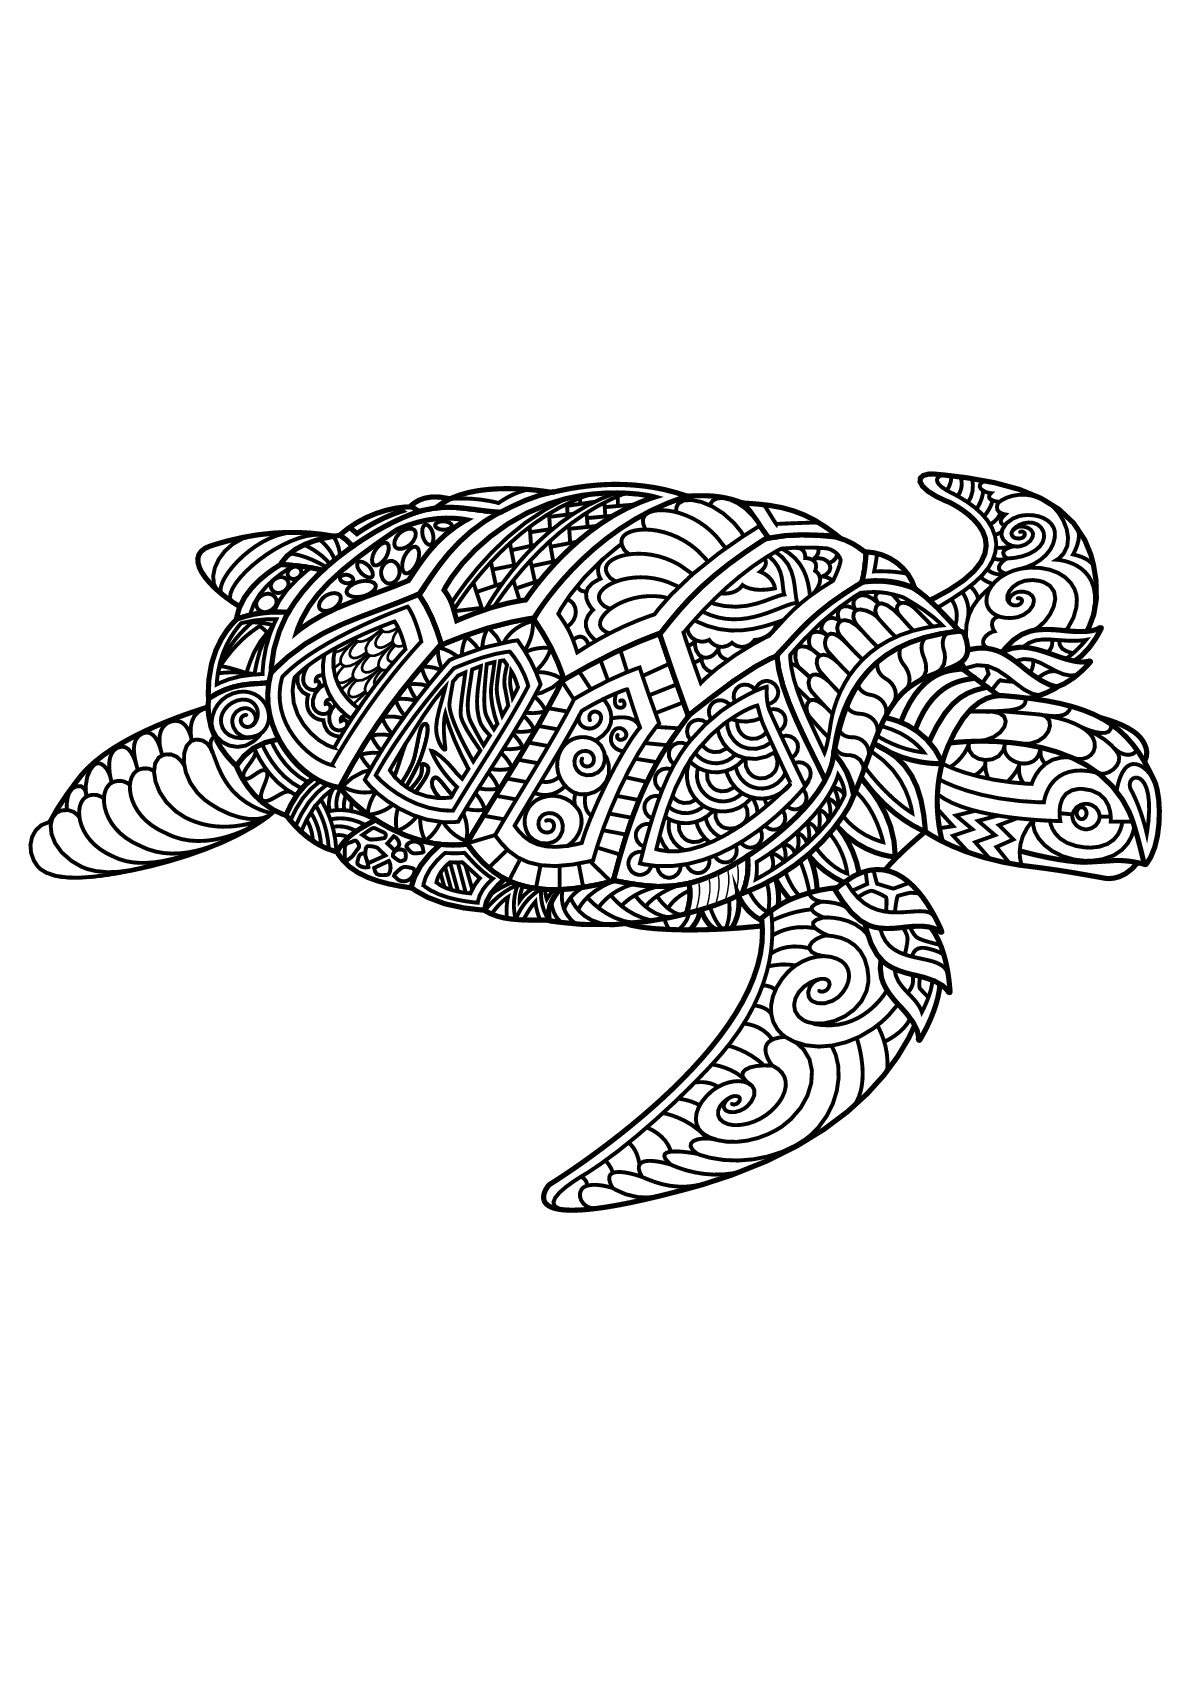 Turtle with complex and beautiful patterns